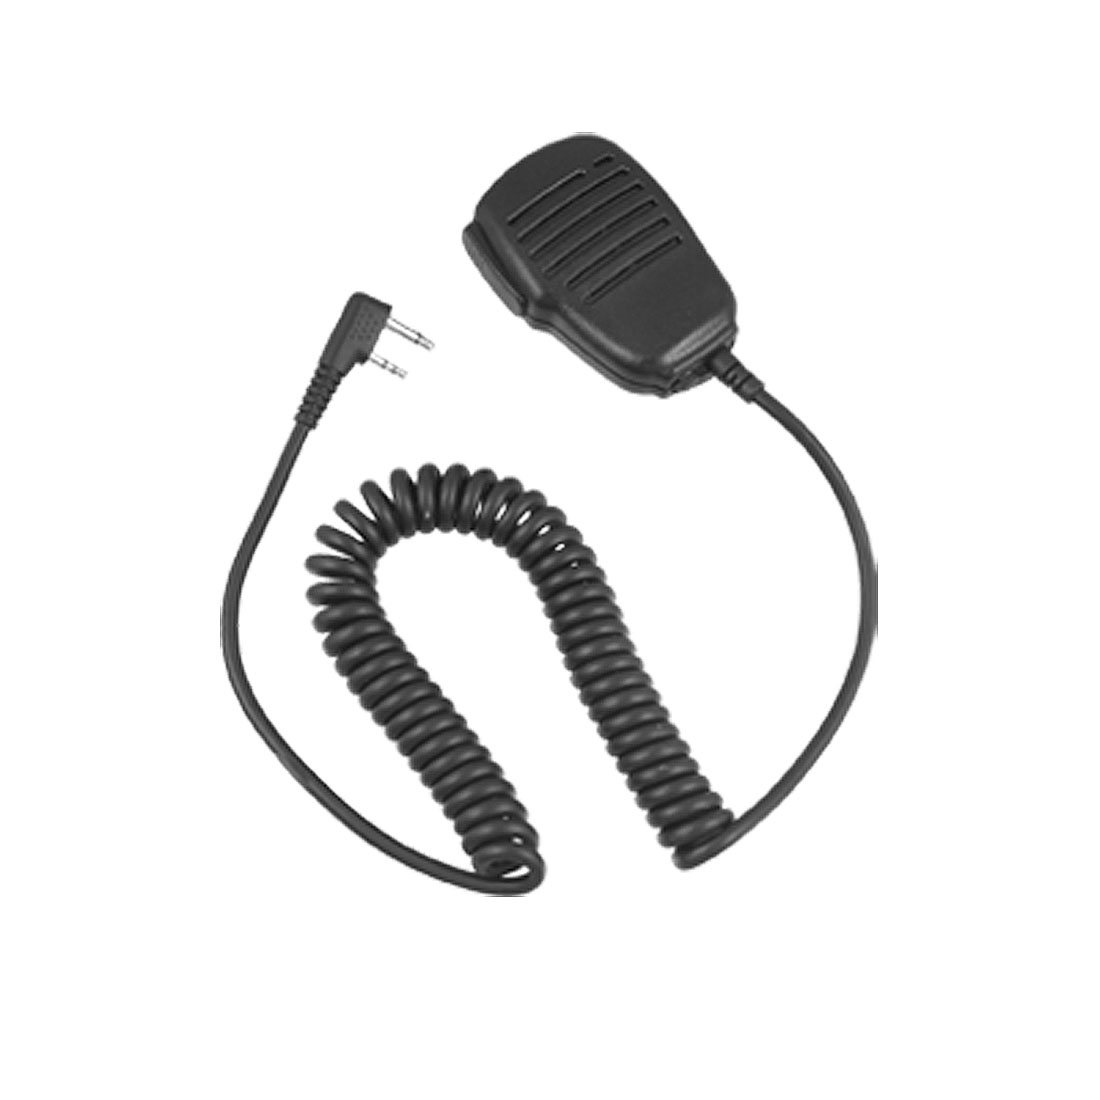 Black 2 Pin Coil Cord Speaker Microphone for Icom IC-IV8